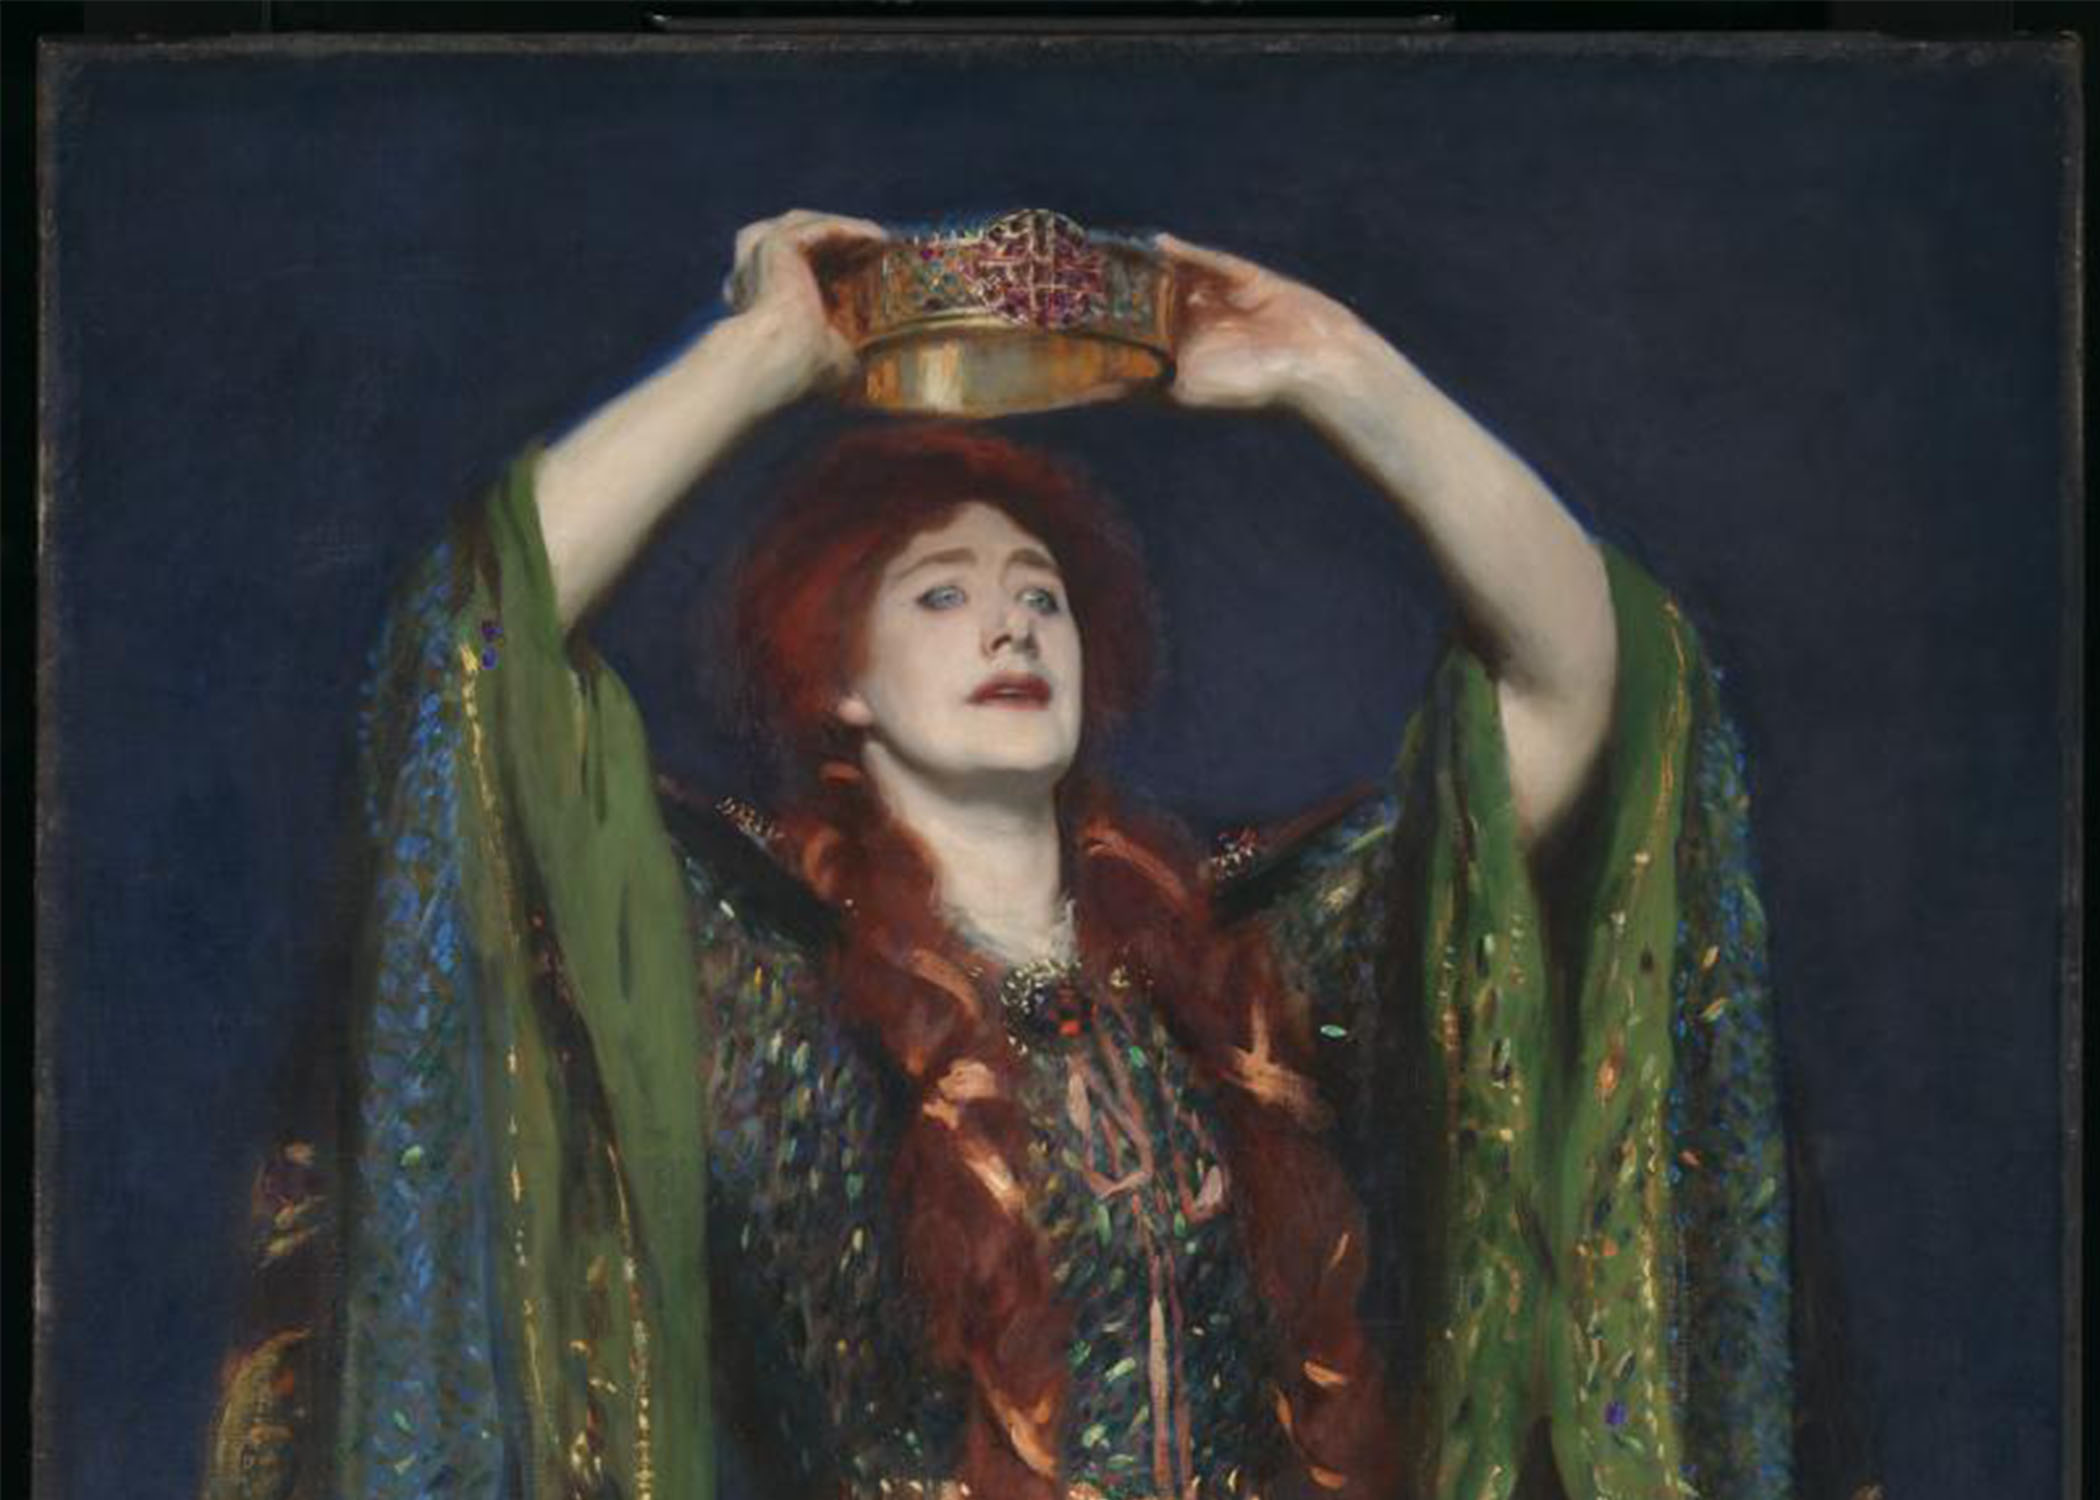 painted portrait of an imagined Lady Macbeth, with long red hair and green robes, arms outstretched, placing a crown on her own head